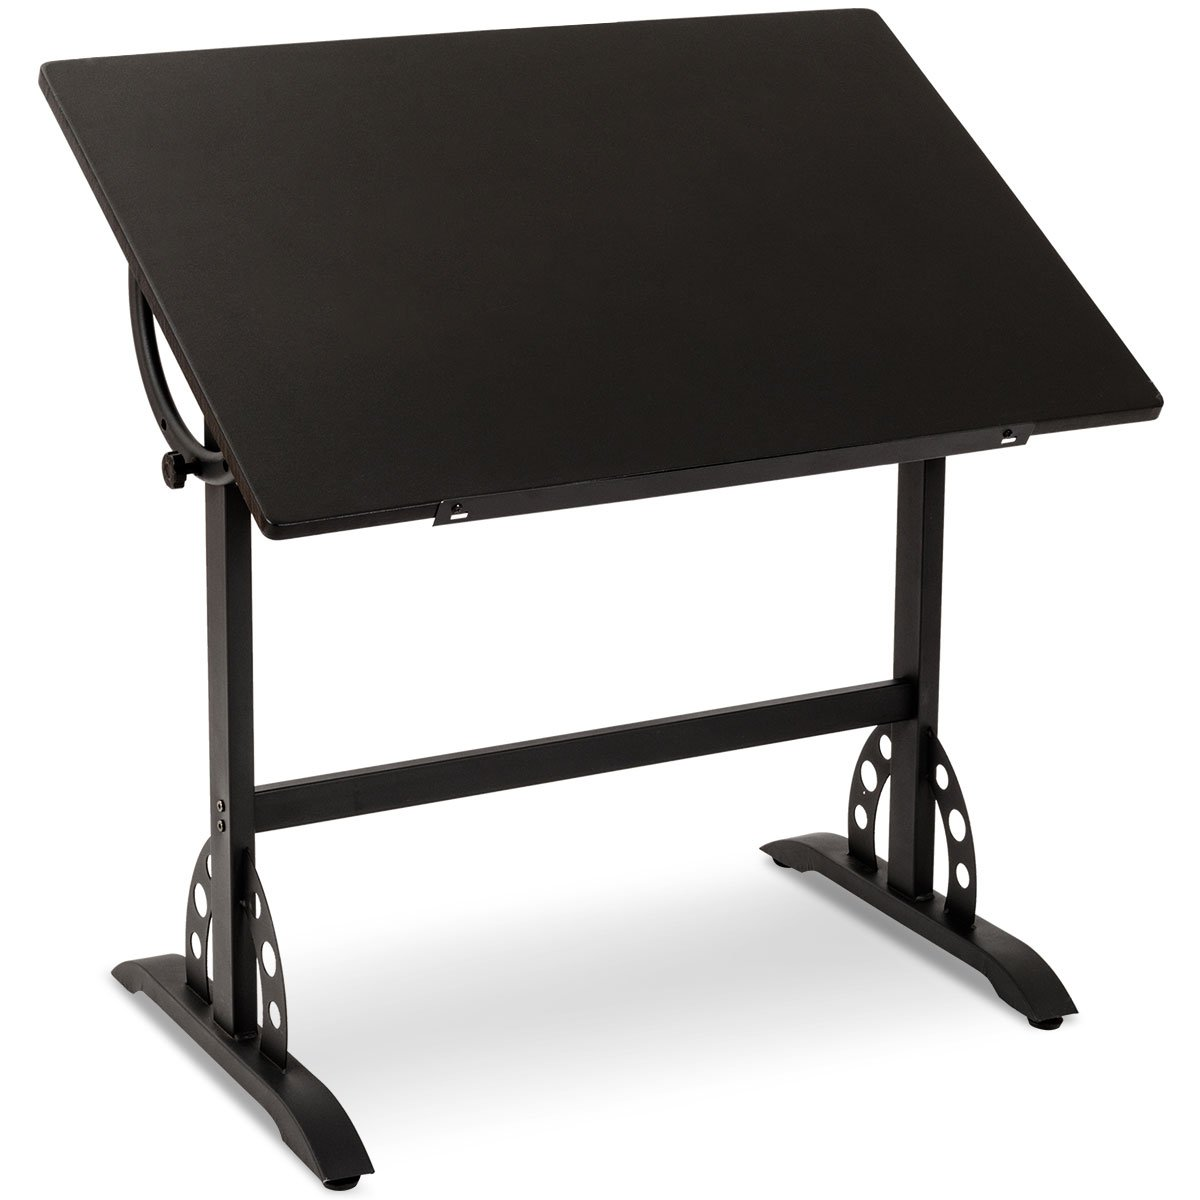 Tangkula Adjustable Drawing Desk Art & Craft Drafting Table Craft Station Chic Multi-Functional Paint, Study, Write Table, Black